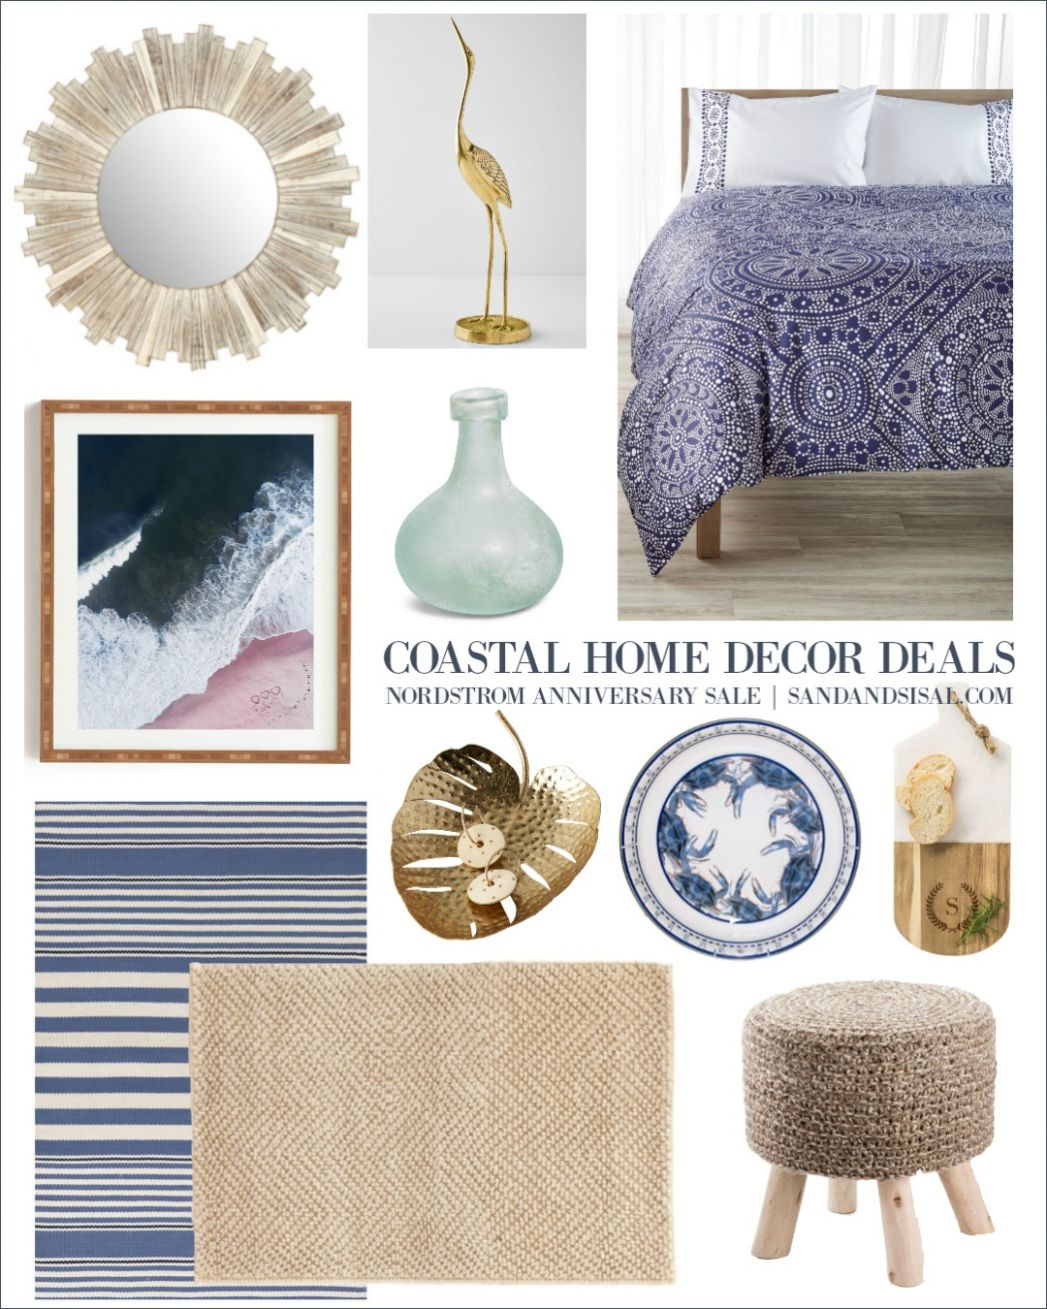 Coastal Home Decor Deals - Nordstrom Anniversary Sale- Sand and Sisal